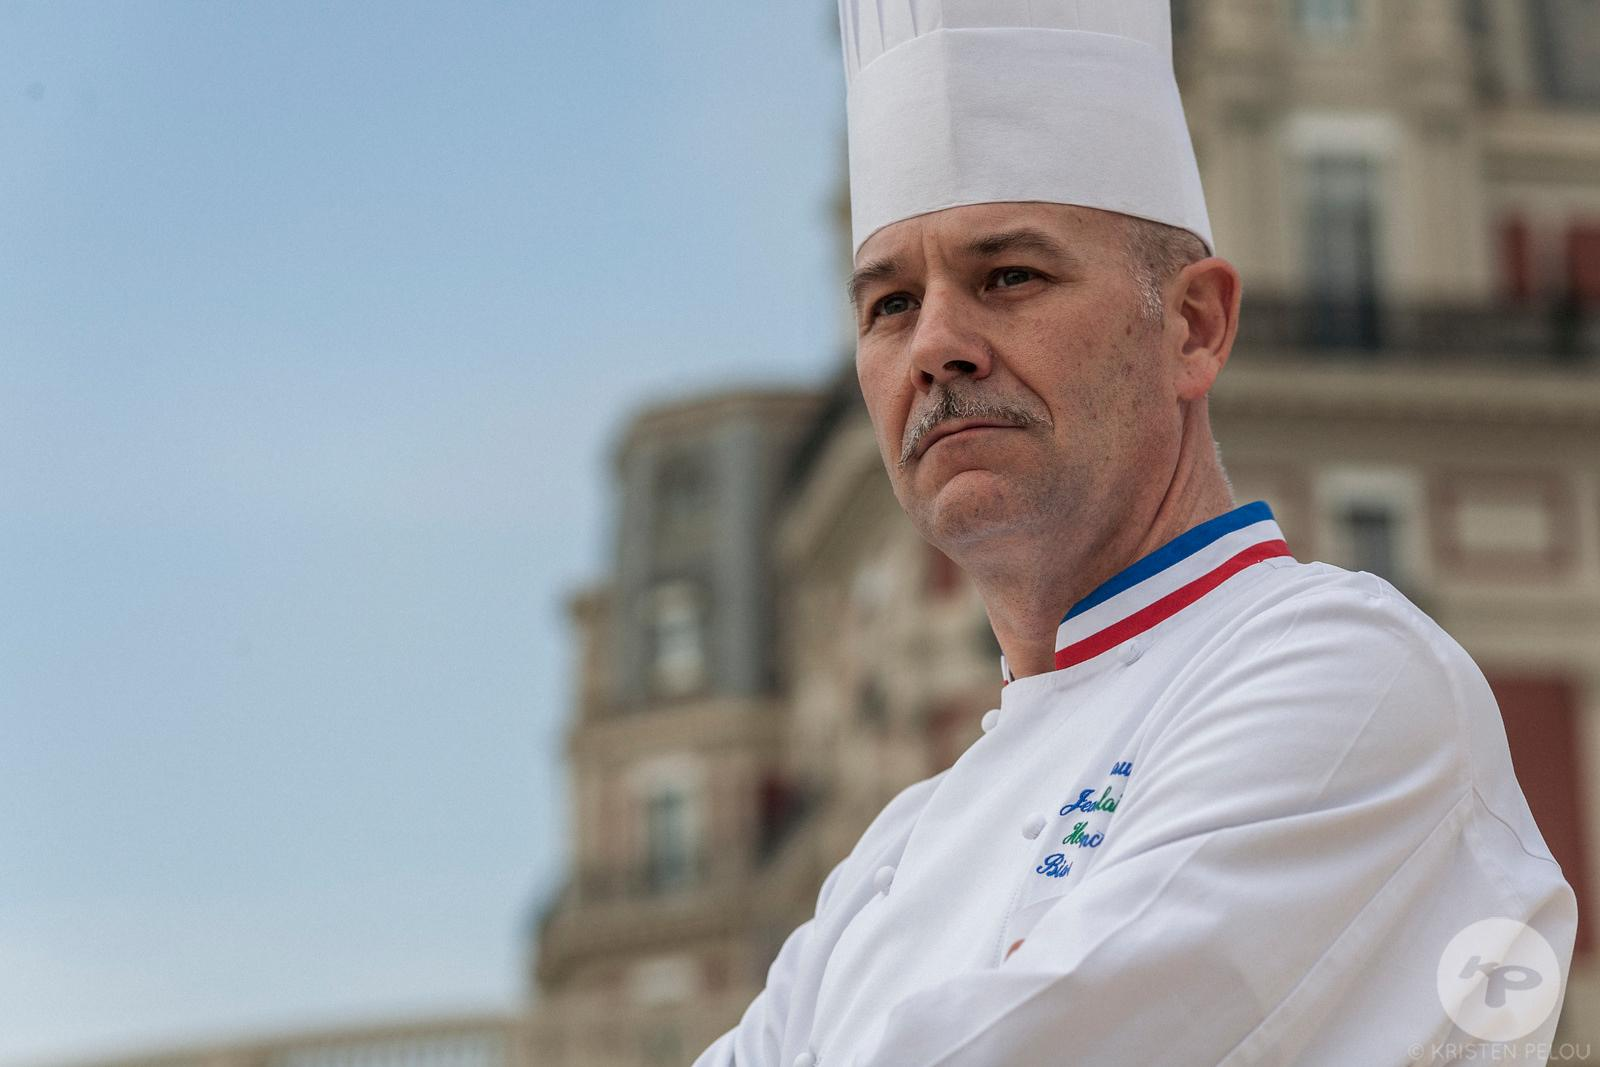 Hotel Photographer - Hotel du Palais in Biarritz with Chef Jean Marie Gautier, Villa Eugenie restaurant.  Photo ©Kristen Pelou